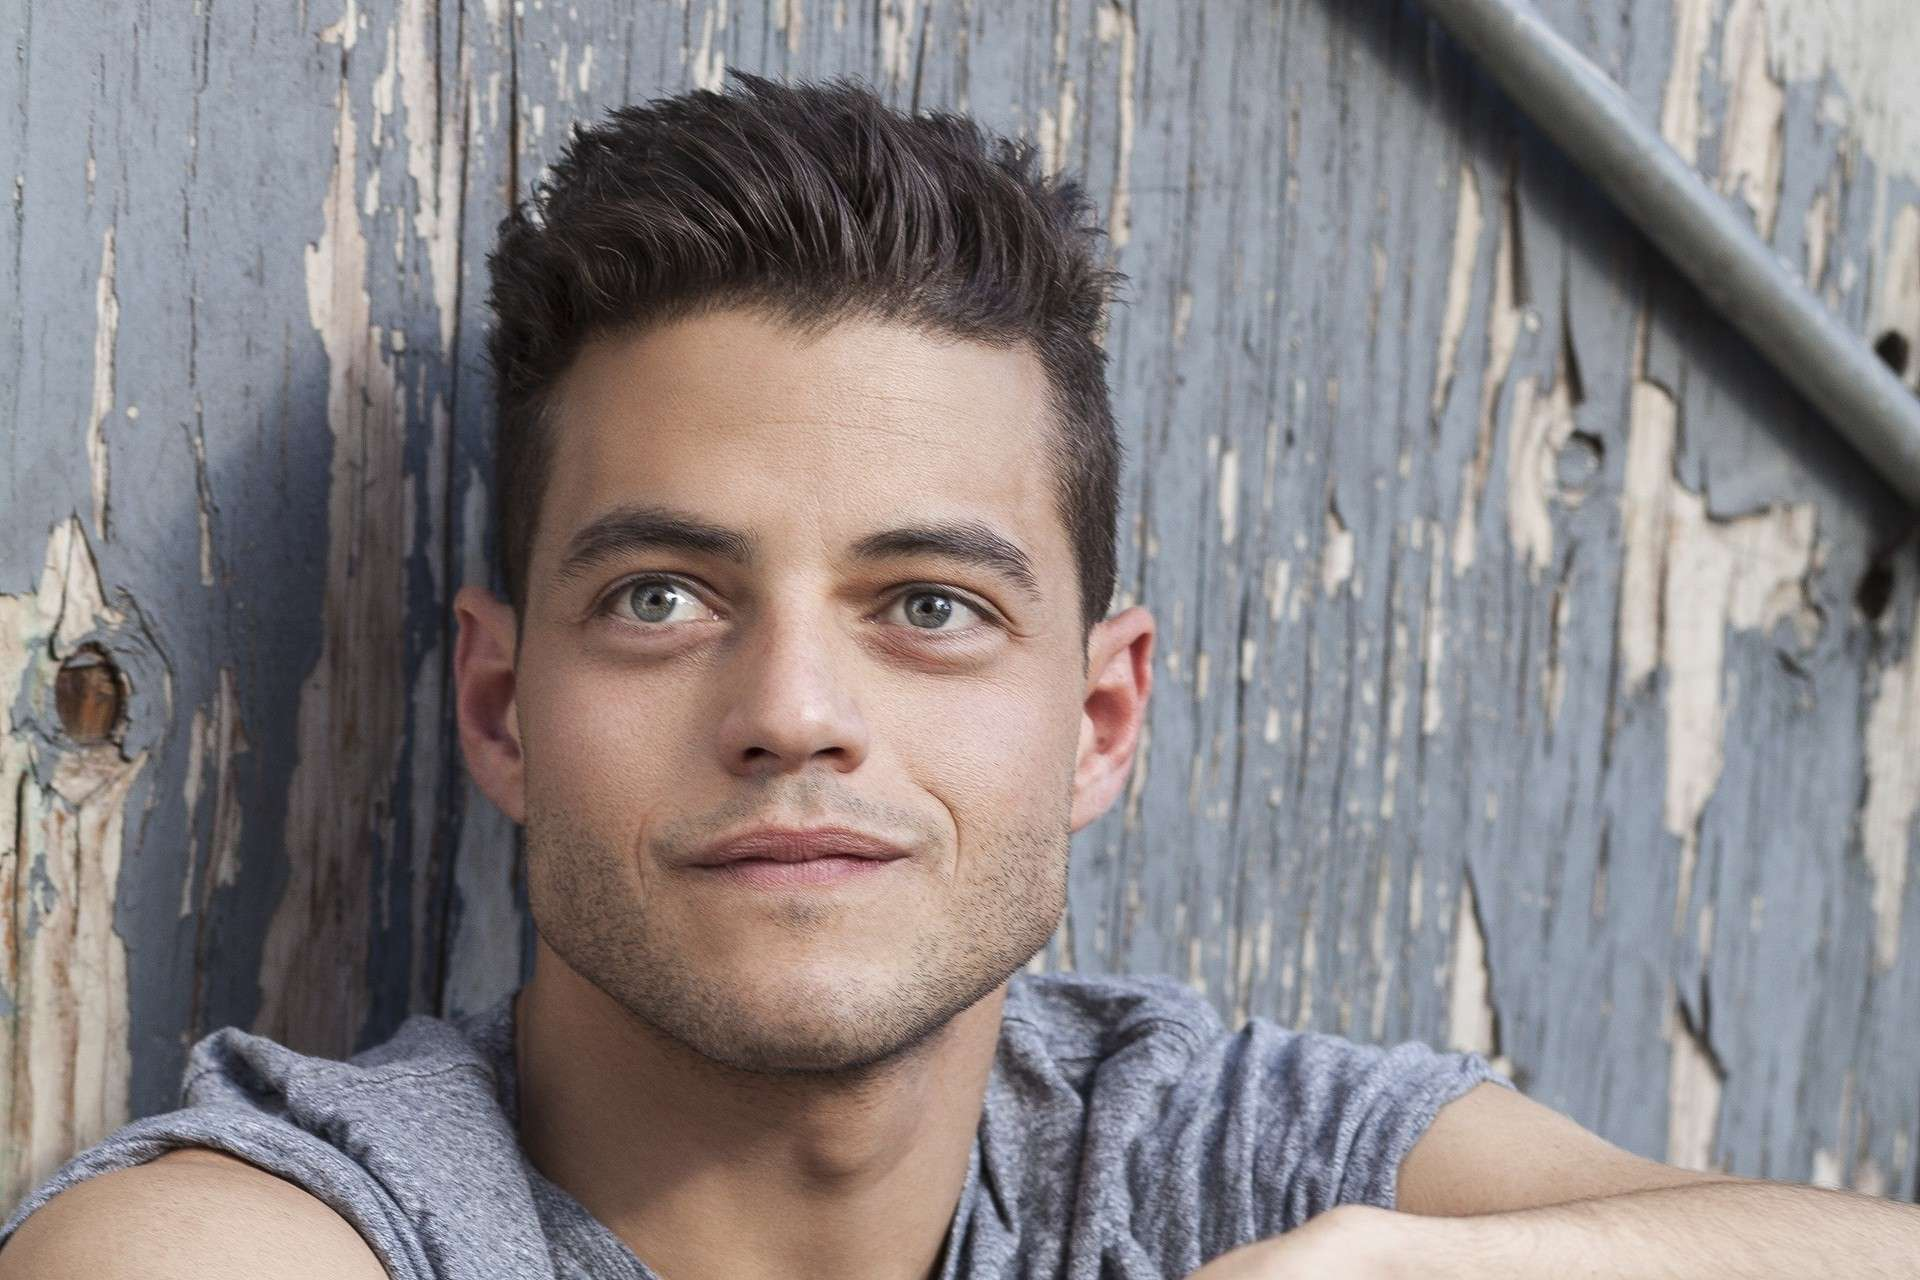 Rami Malek Full Hd Wallpapers High Quality Download